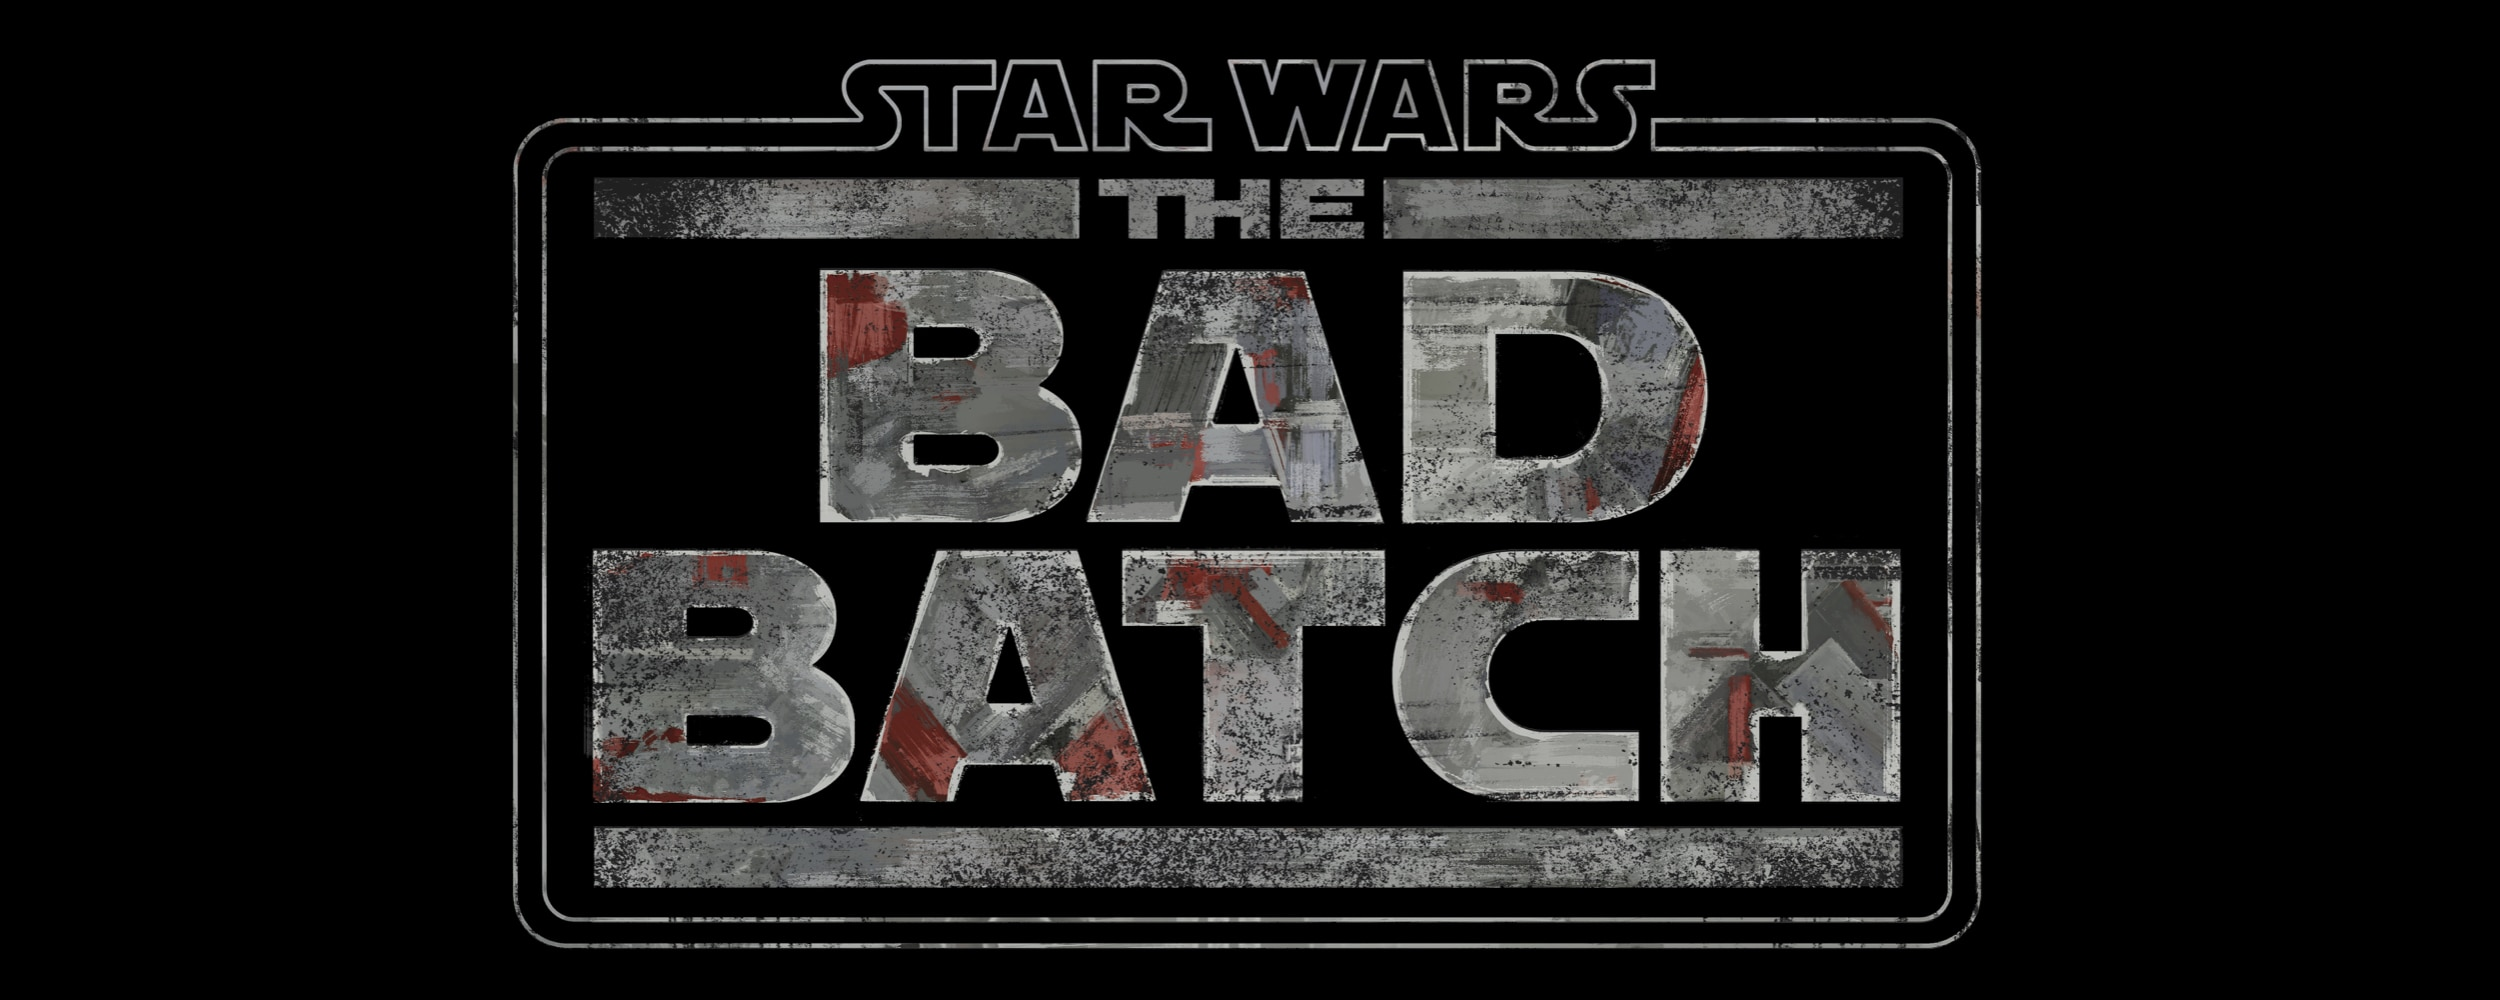 """Star Wars: The Bad Batch"" – An all-new animated series from Lucasfilm – to Debut on Disney+ in 2021"